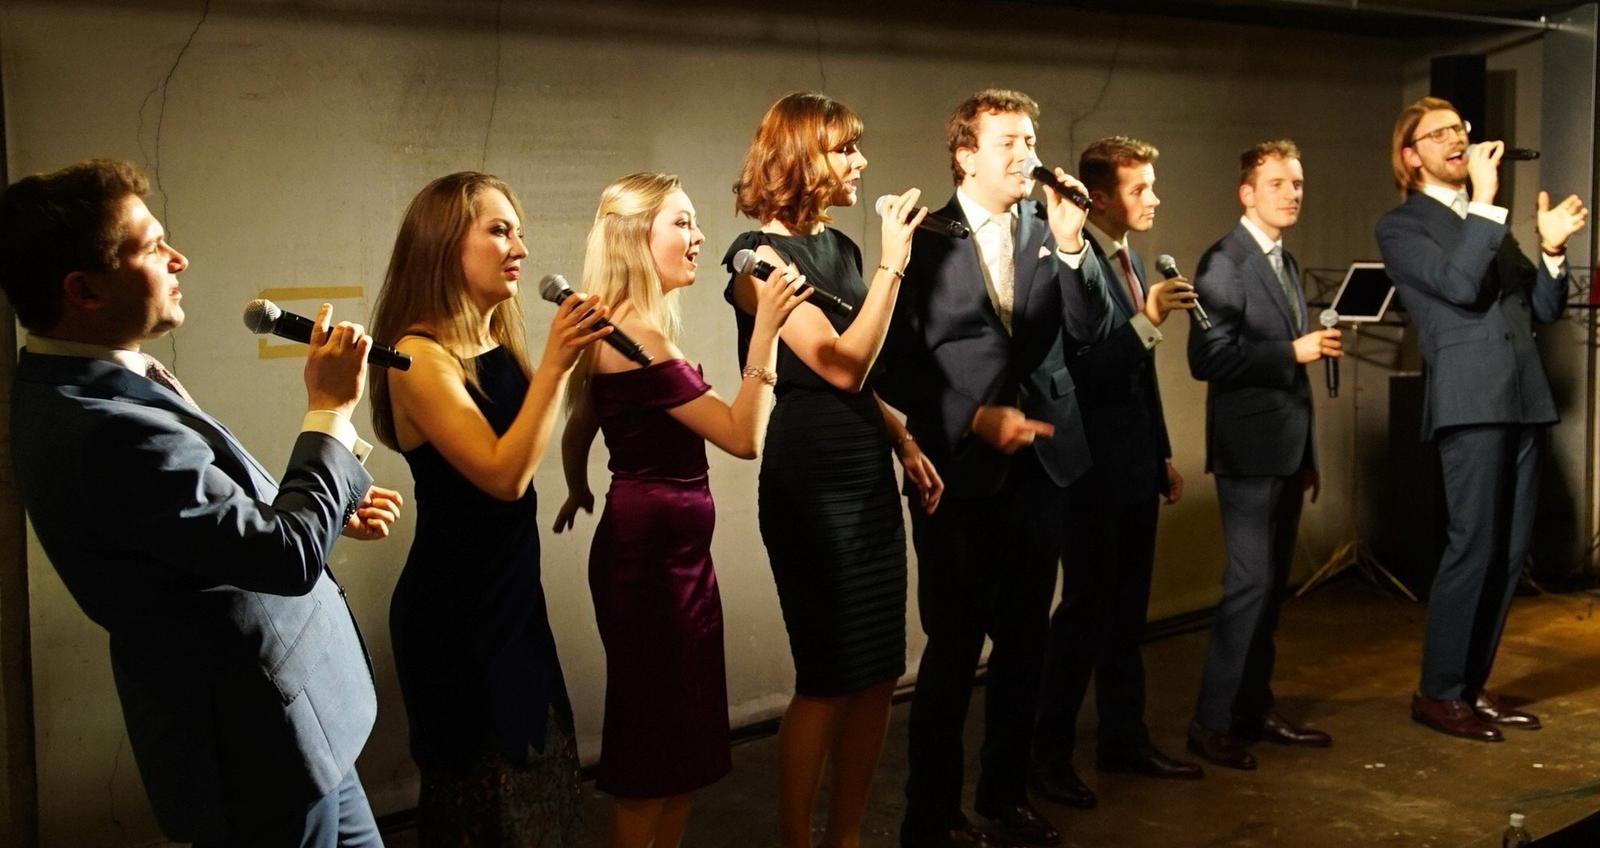 VOCES8 - Tue 30 July 7:00PMVOCES8 presents highlights from the group's season.